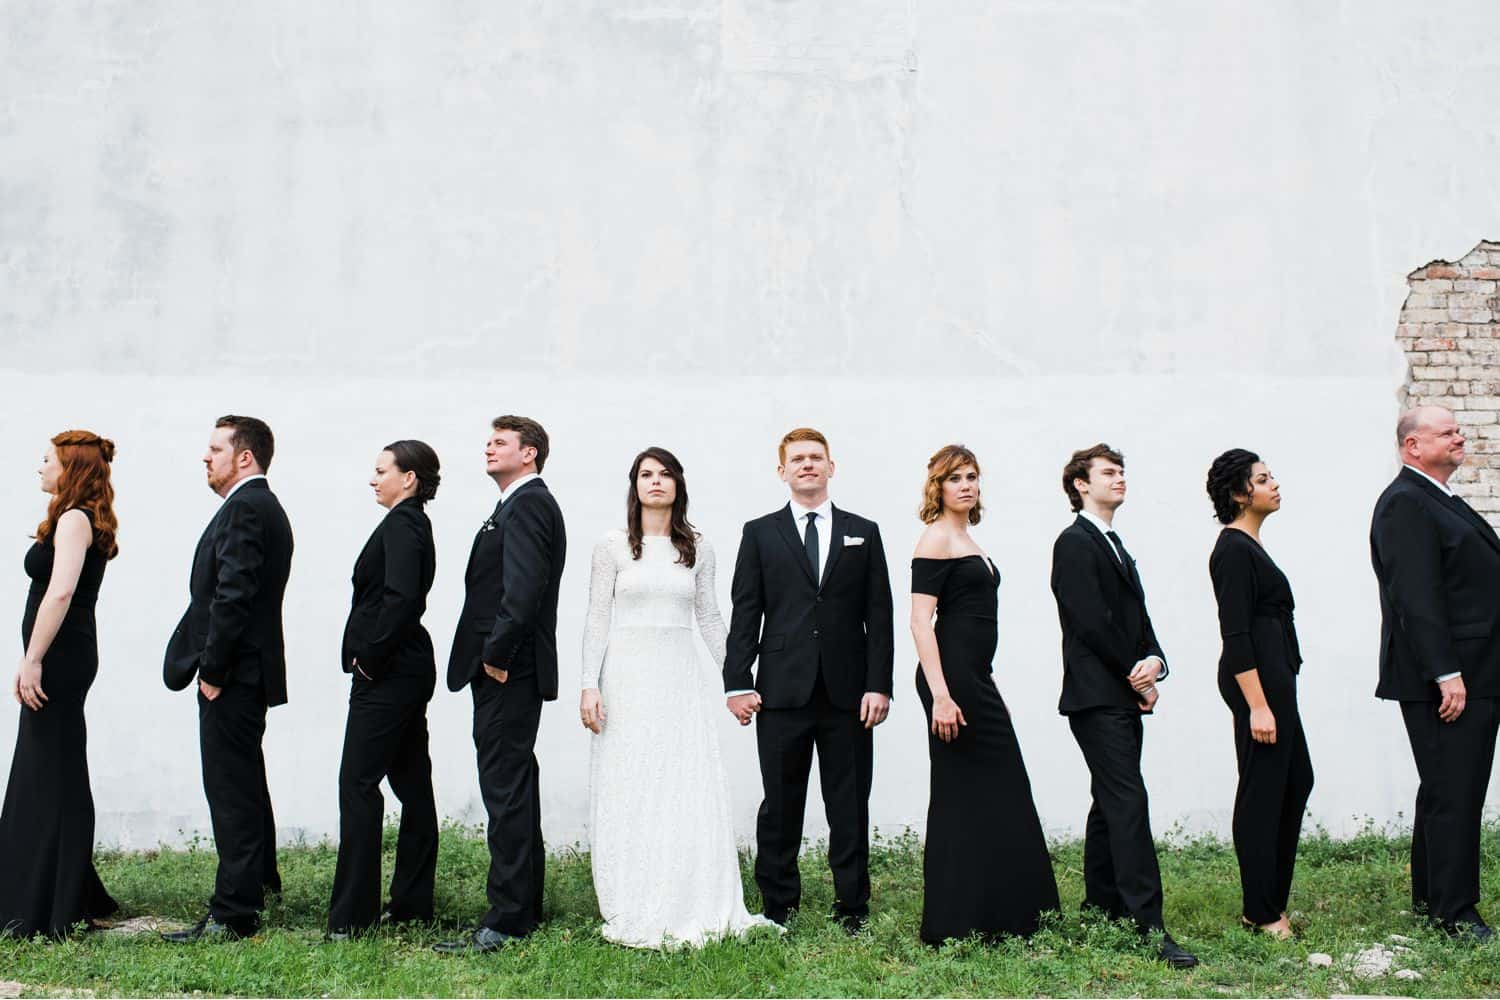 A wedding party stands side-by-side in front of a large white brick wall.